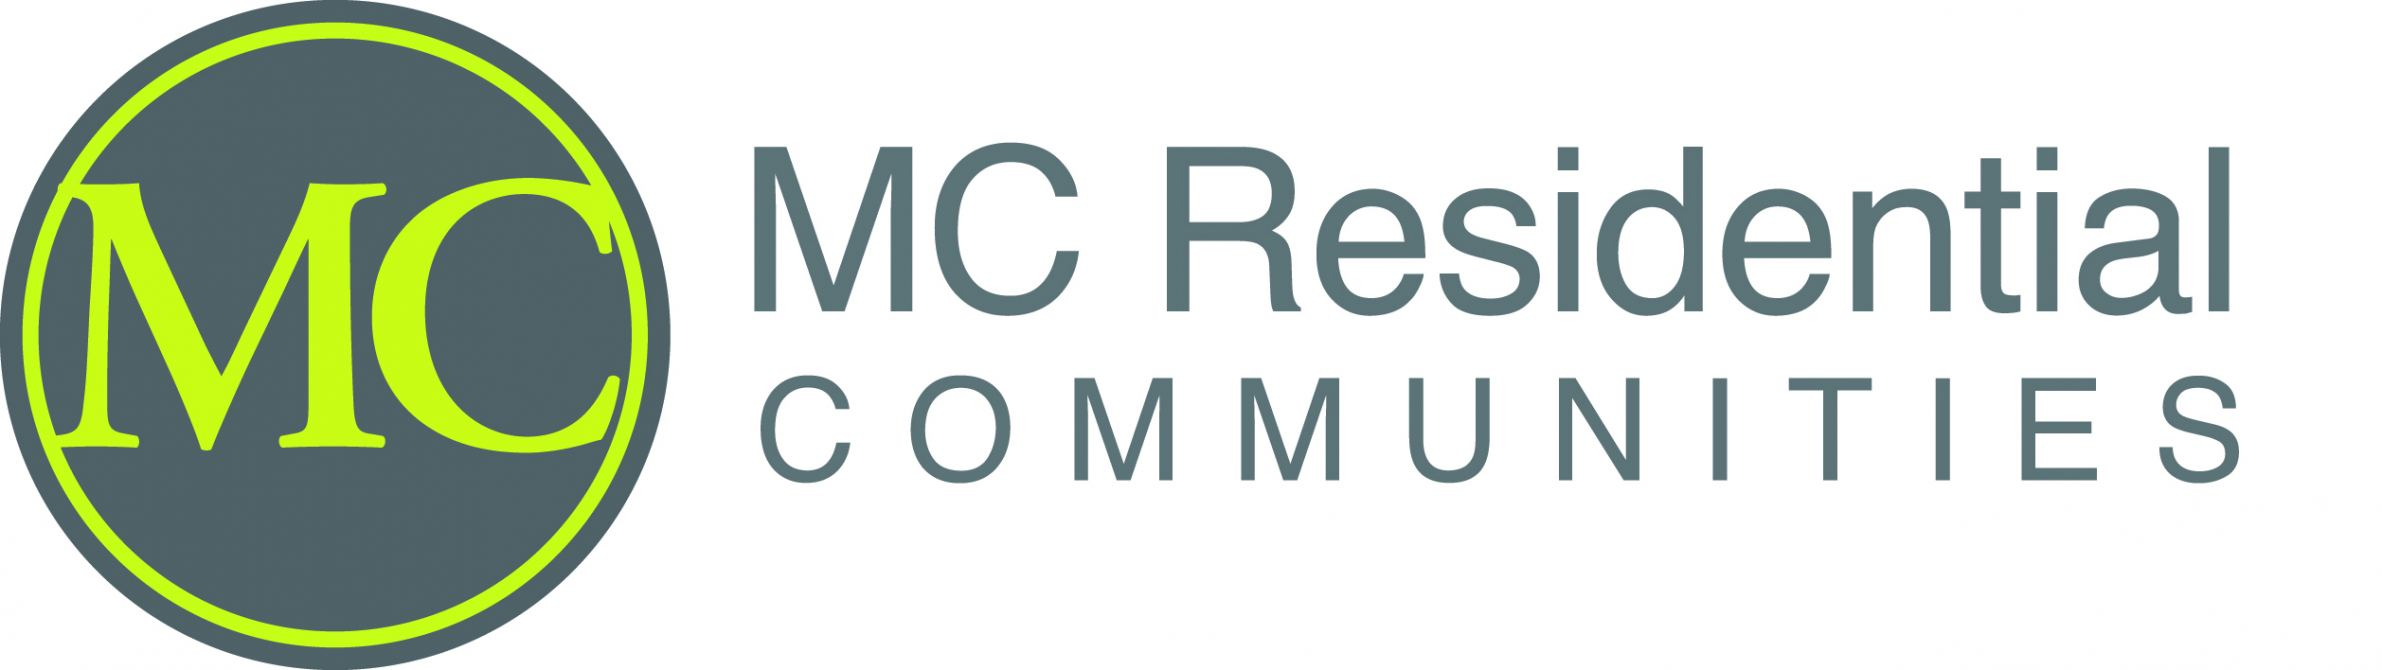 MC Residential Communities Logo